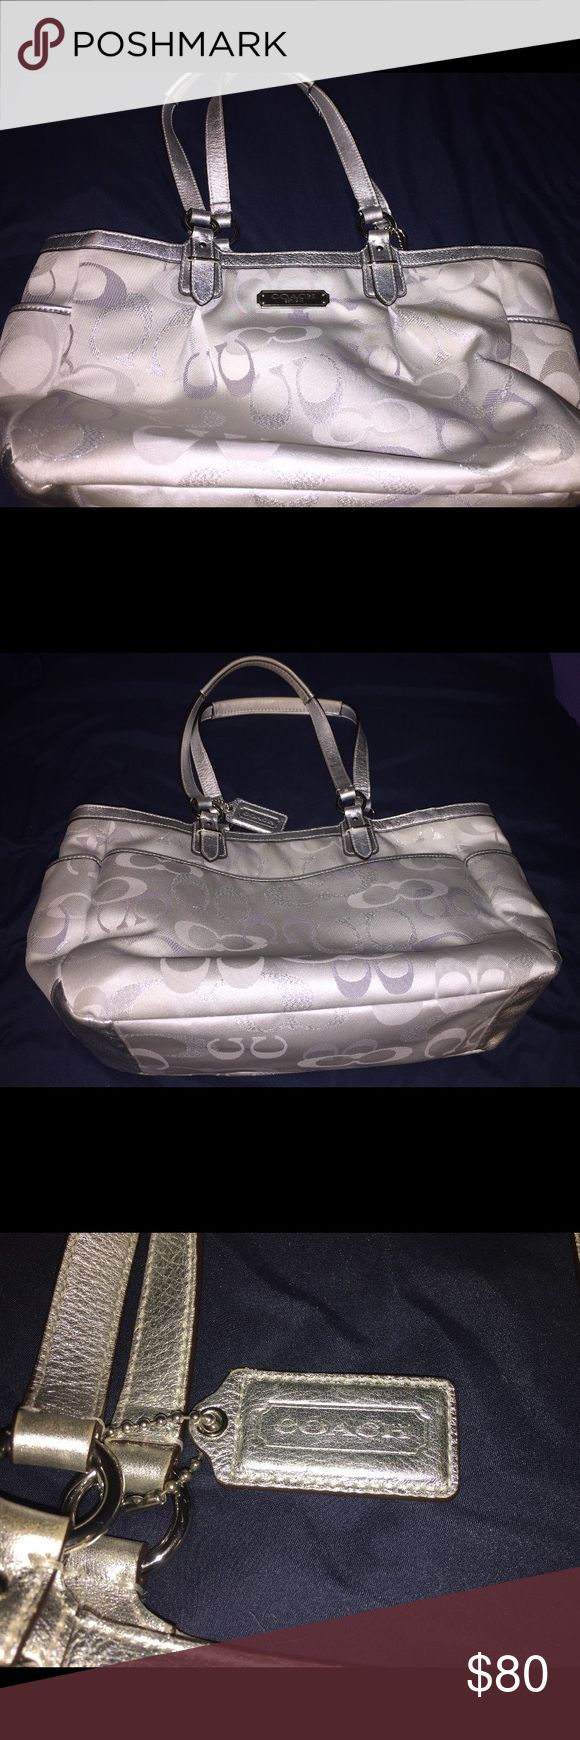 Coach purse In great condition just needs to be cleaned! Coach Accessories